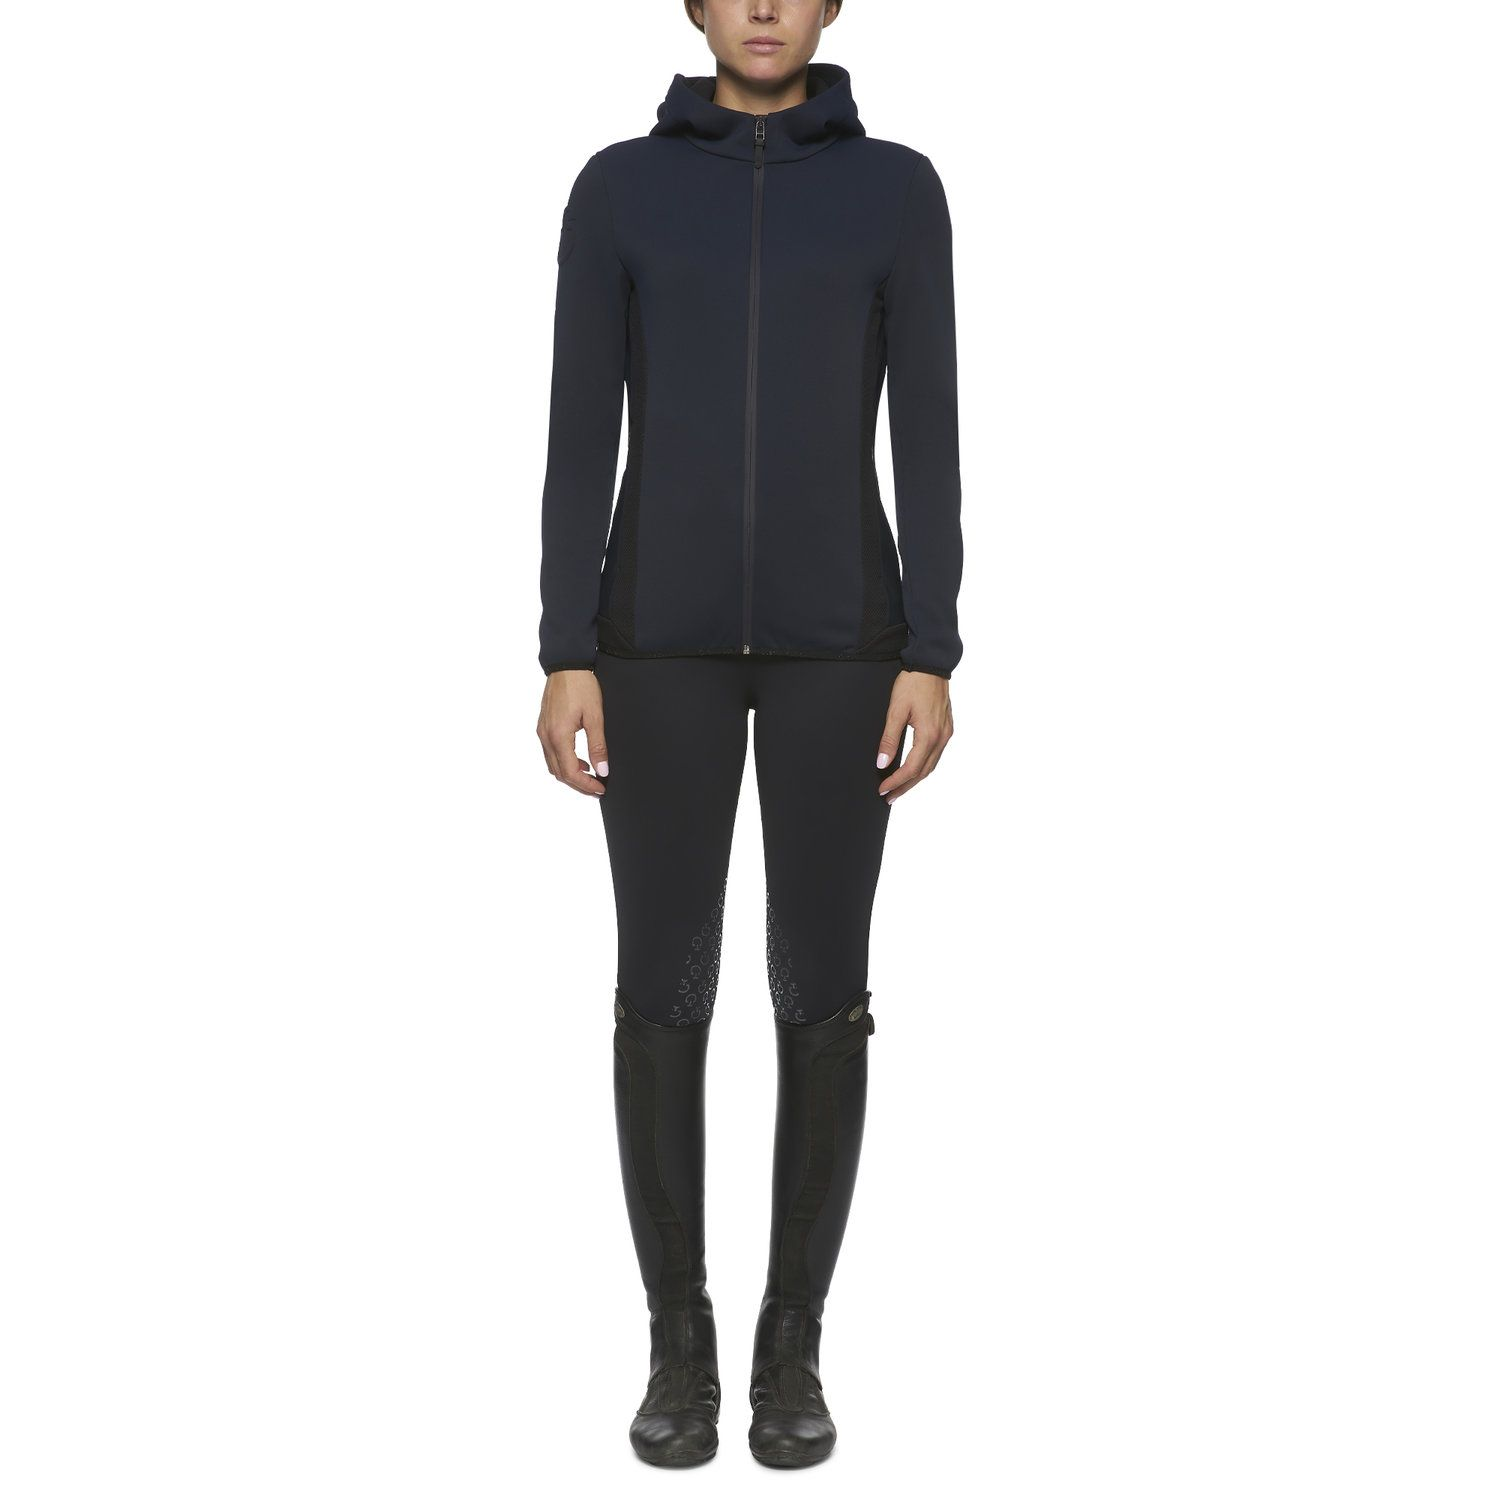 Women's hooded piqué softshell jacket